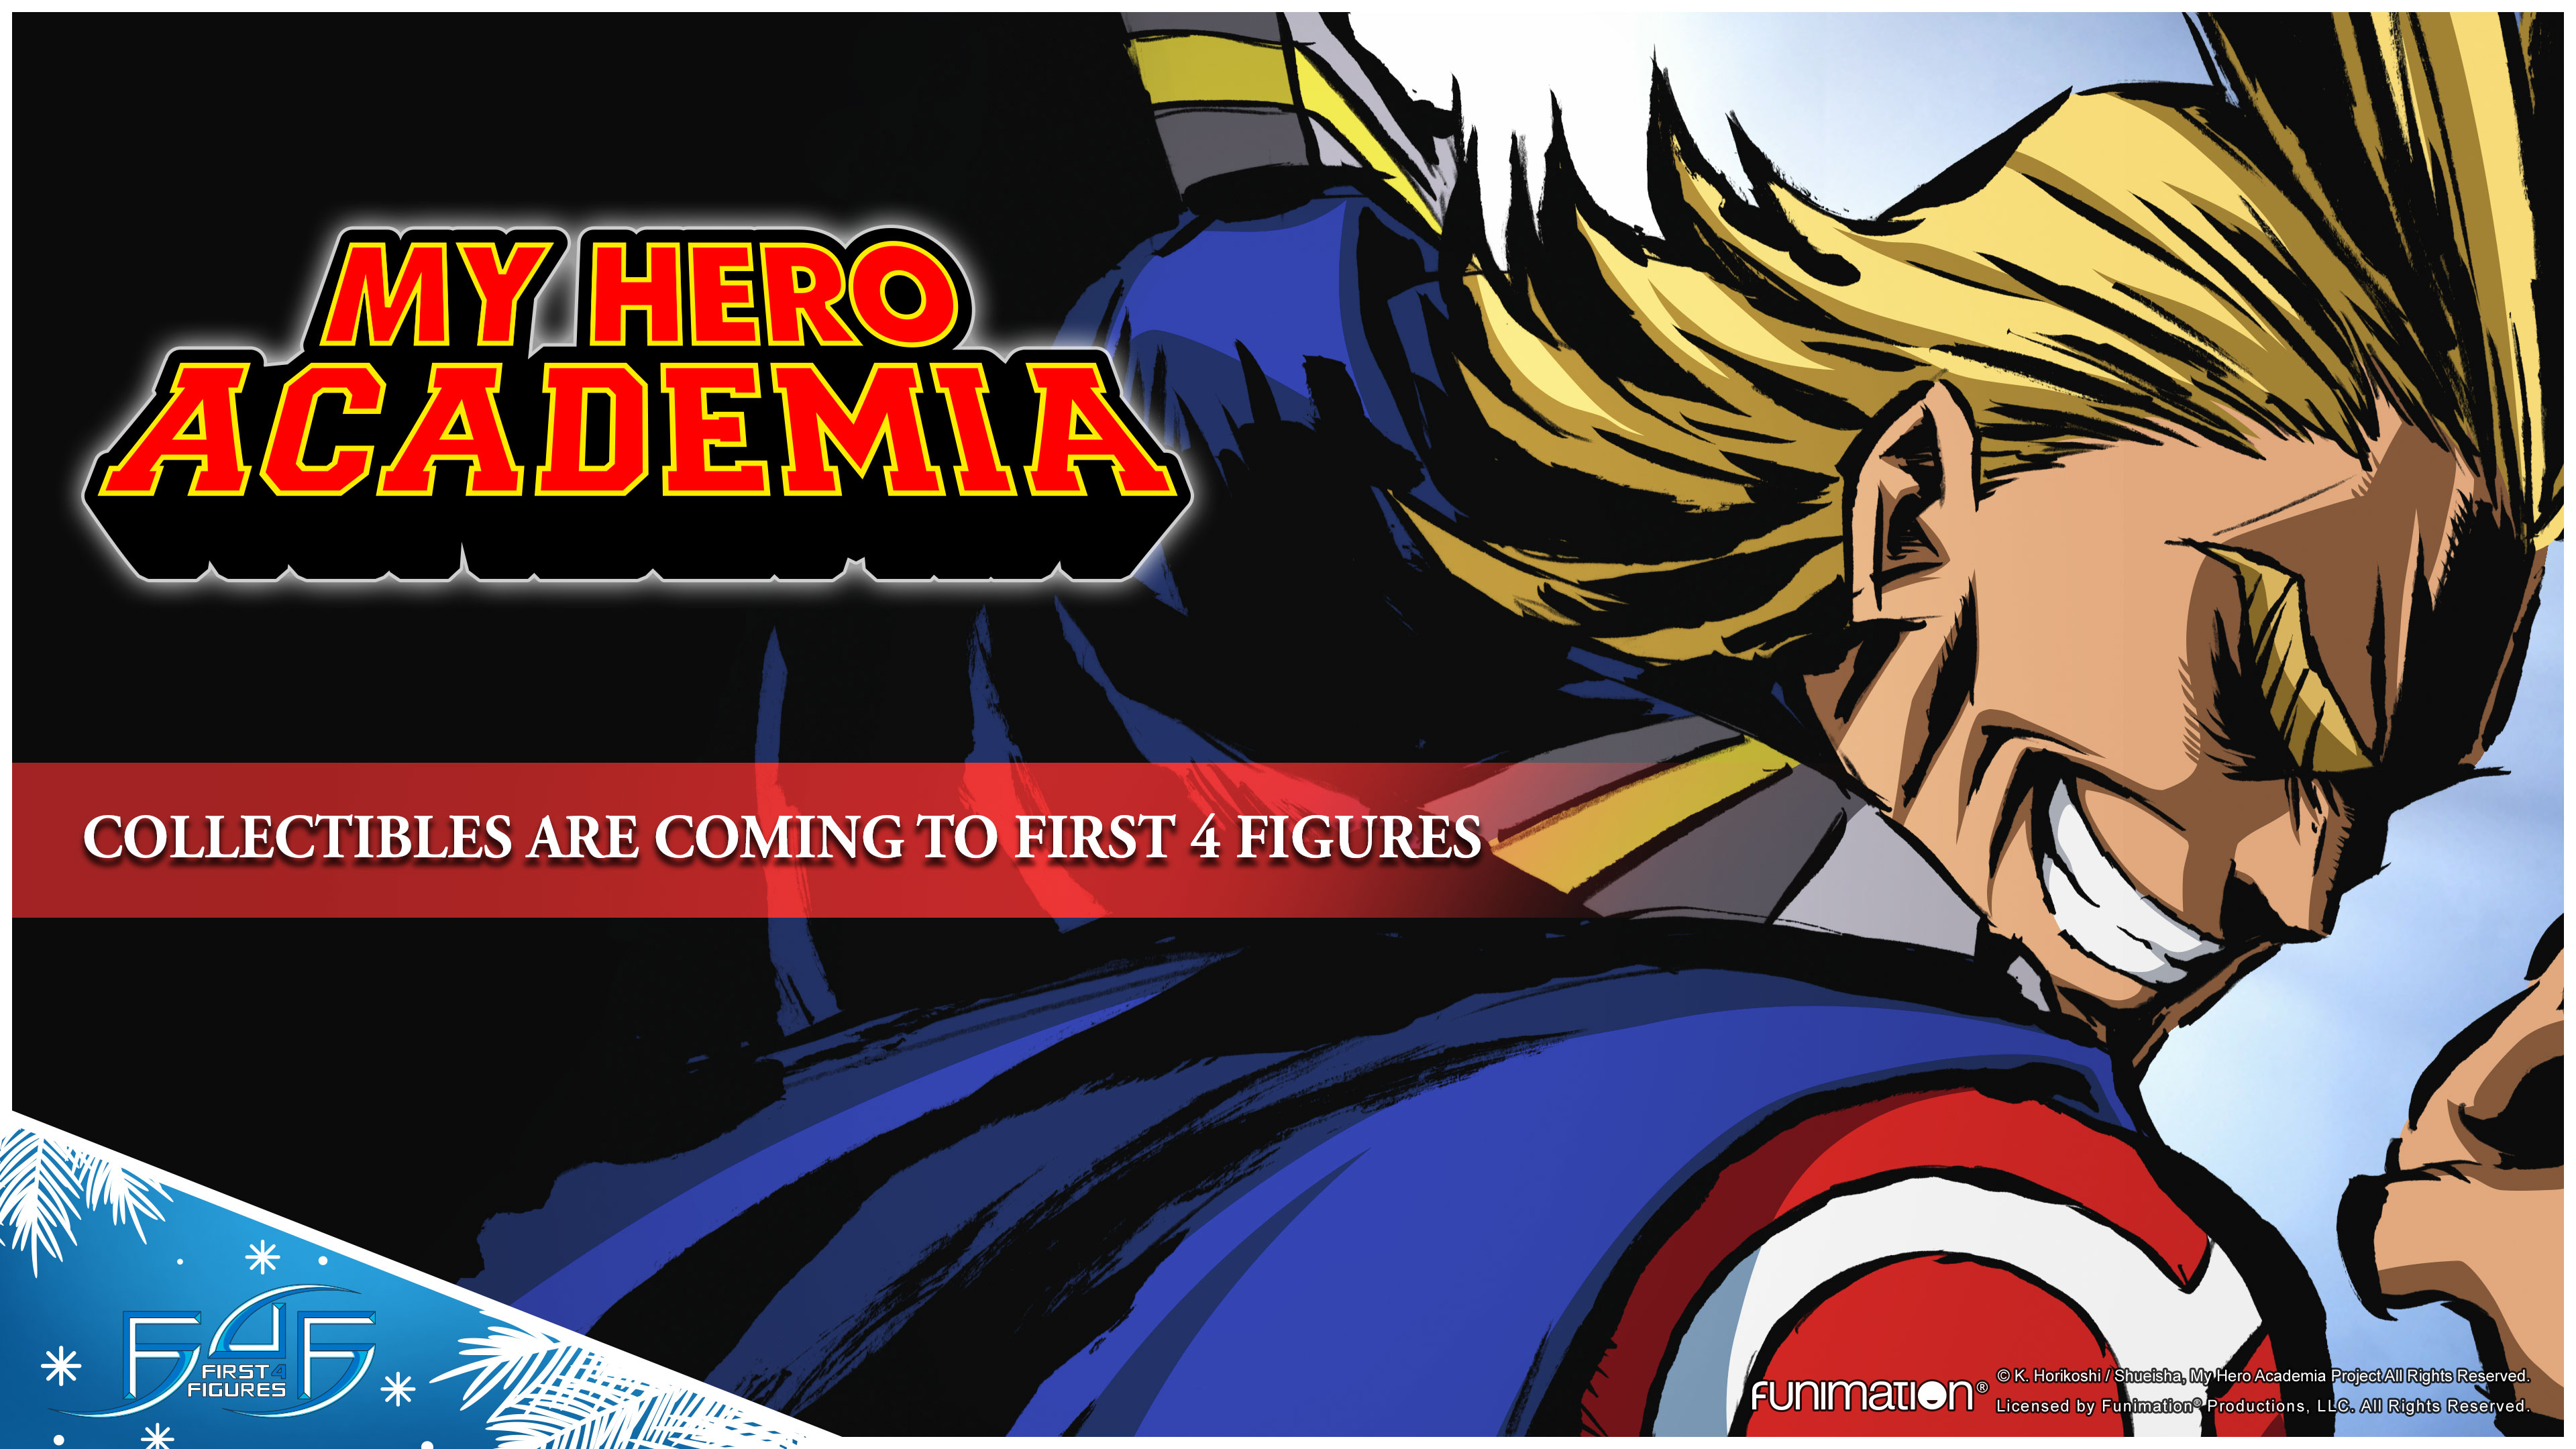 My Hero Academia collectibles are coming to First 4 Figures